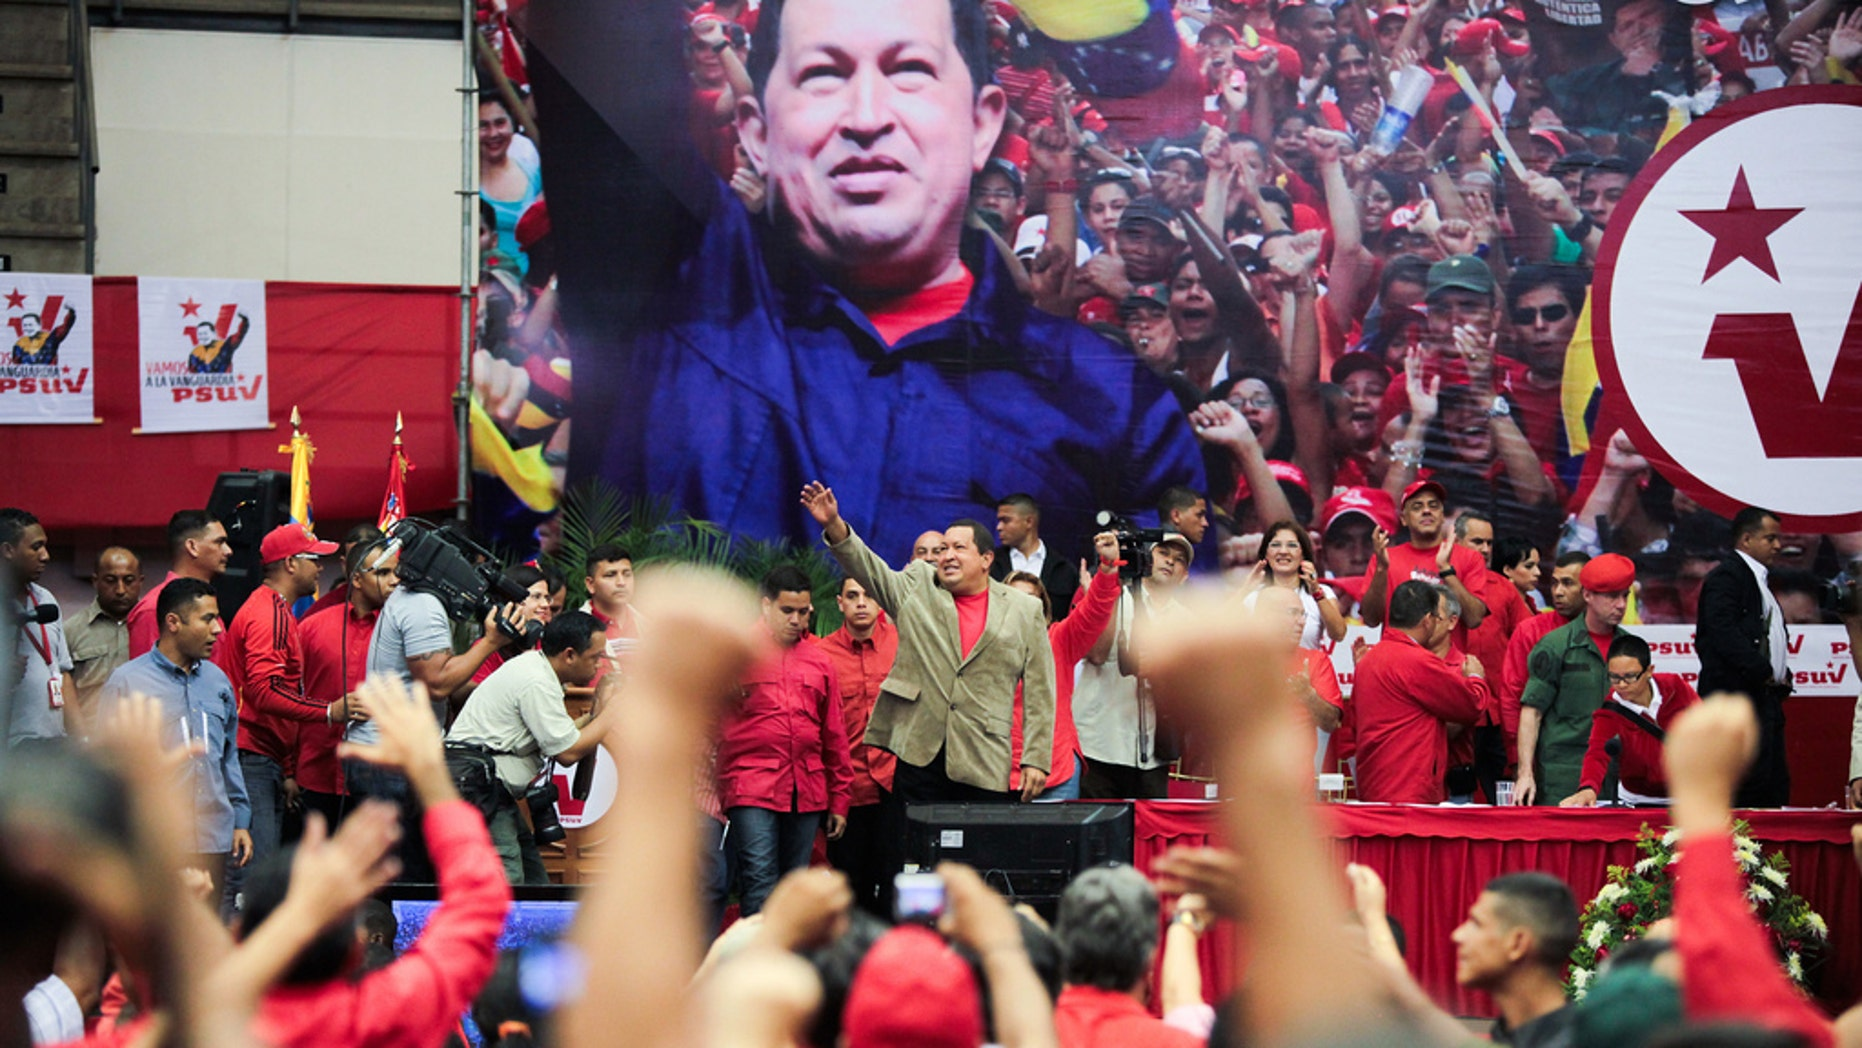 Hugo Chávez speaks to supporters on Feb. 17, his last public appearance.